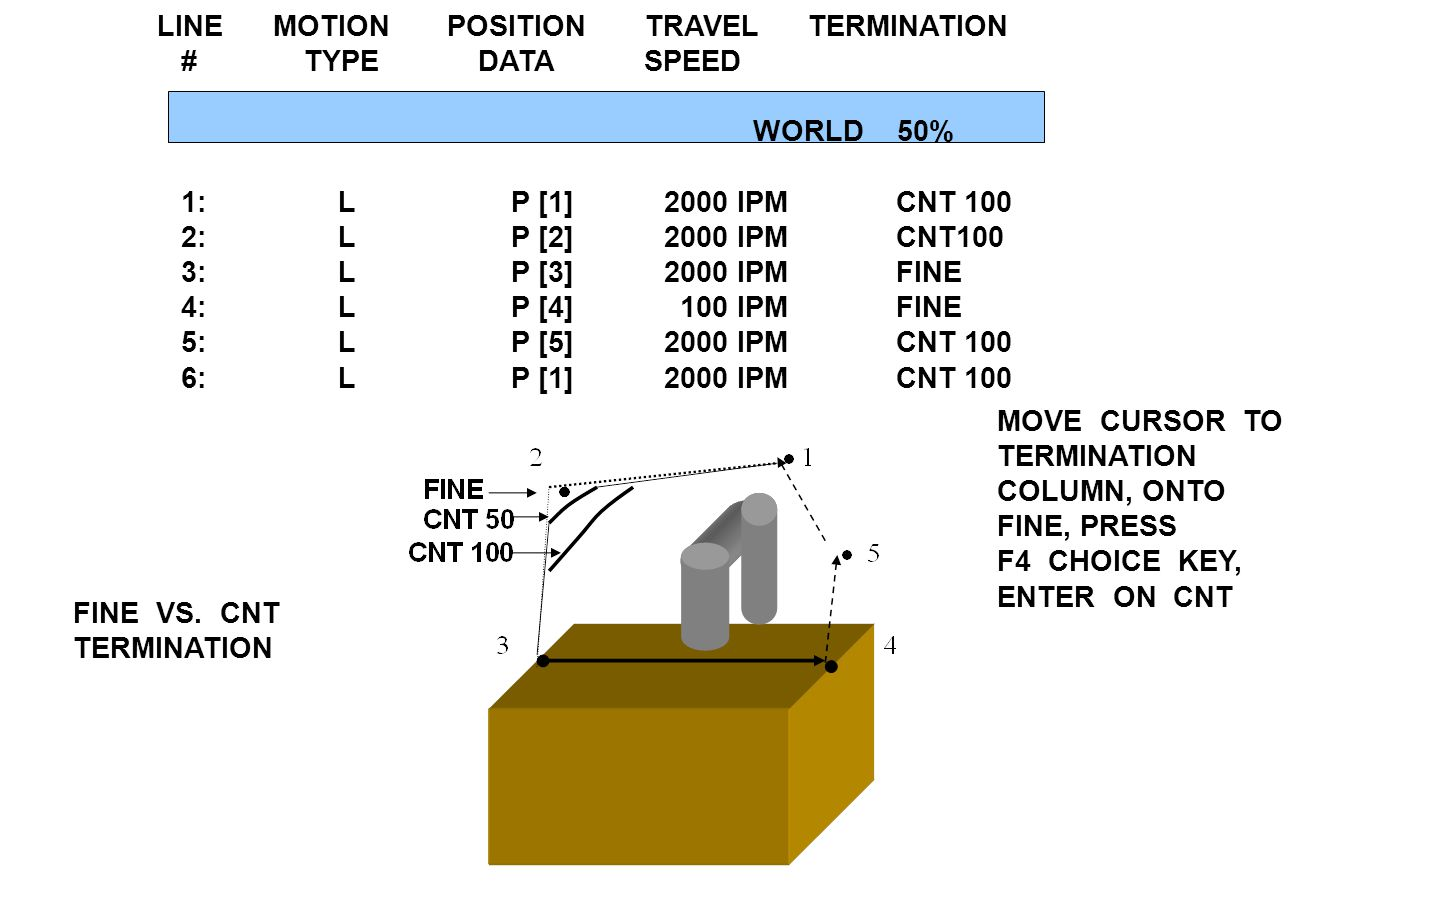 FINE VS. CNT TERMINATION MOVE CURSOR TO TERMINATION COLUMN, ONTO FINE, PRESS F4 CHOICE KEY, ENTER ON CNT LINE MOTION POSITION TRAVEL TERMINATION # TYP